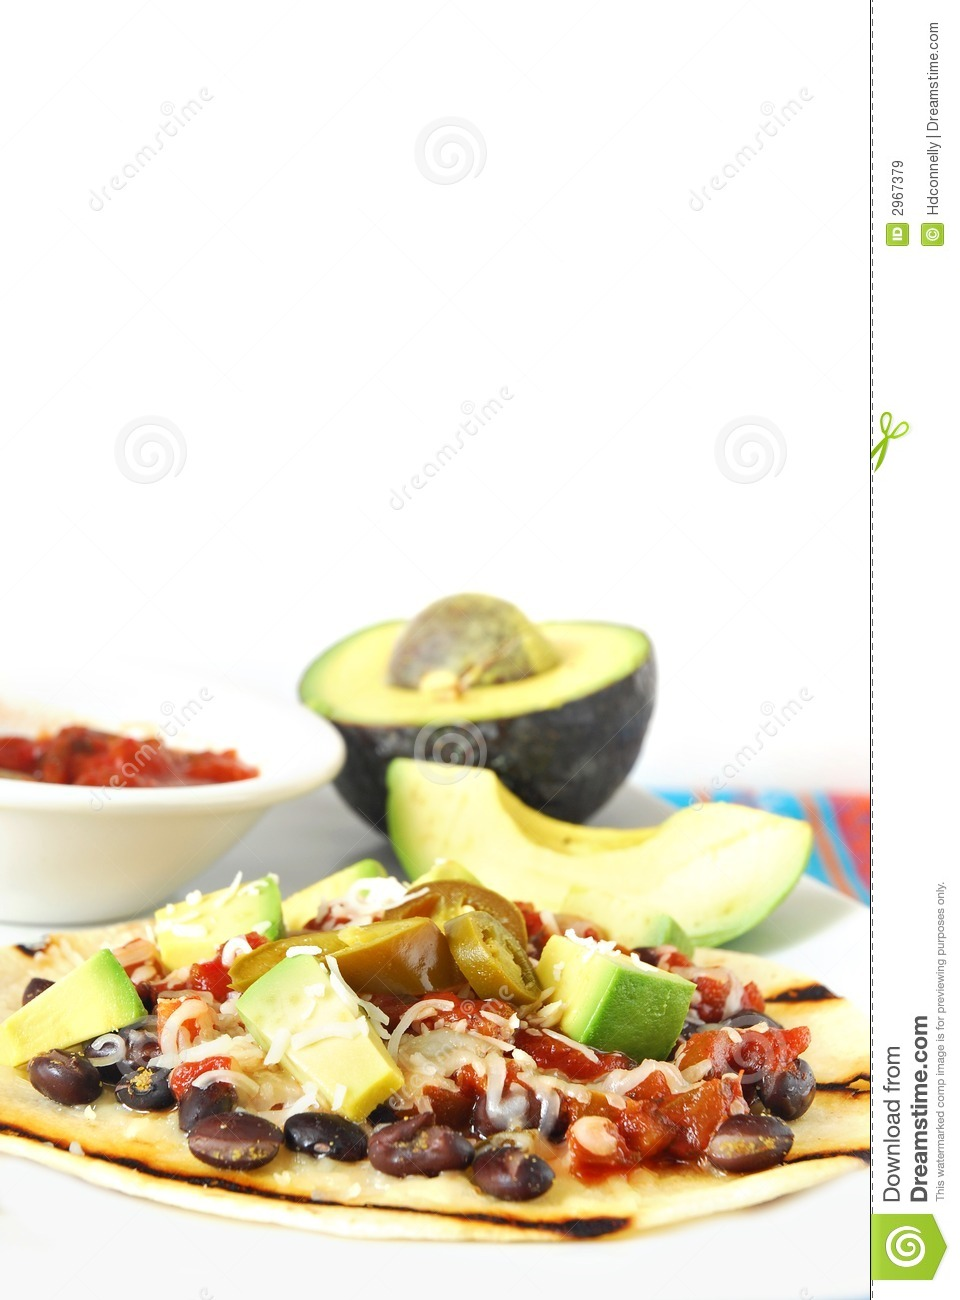 Tostada with black beans, avocado, cheese and salsa. .